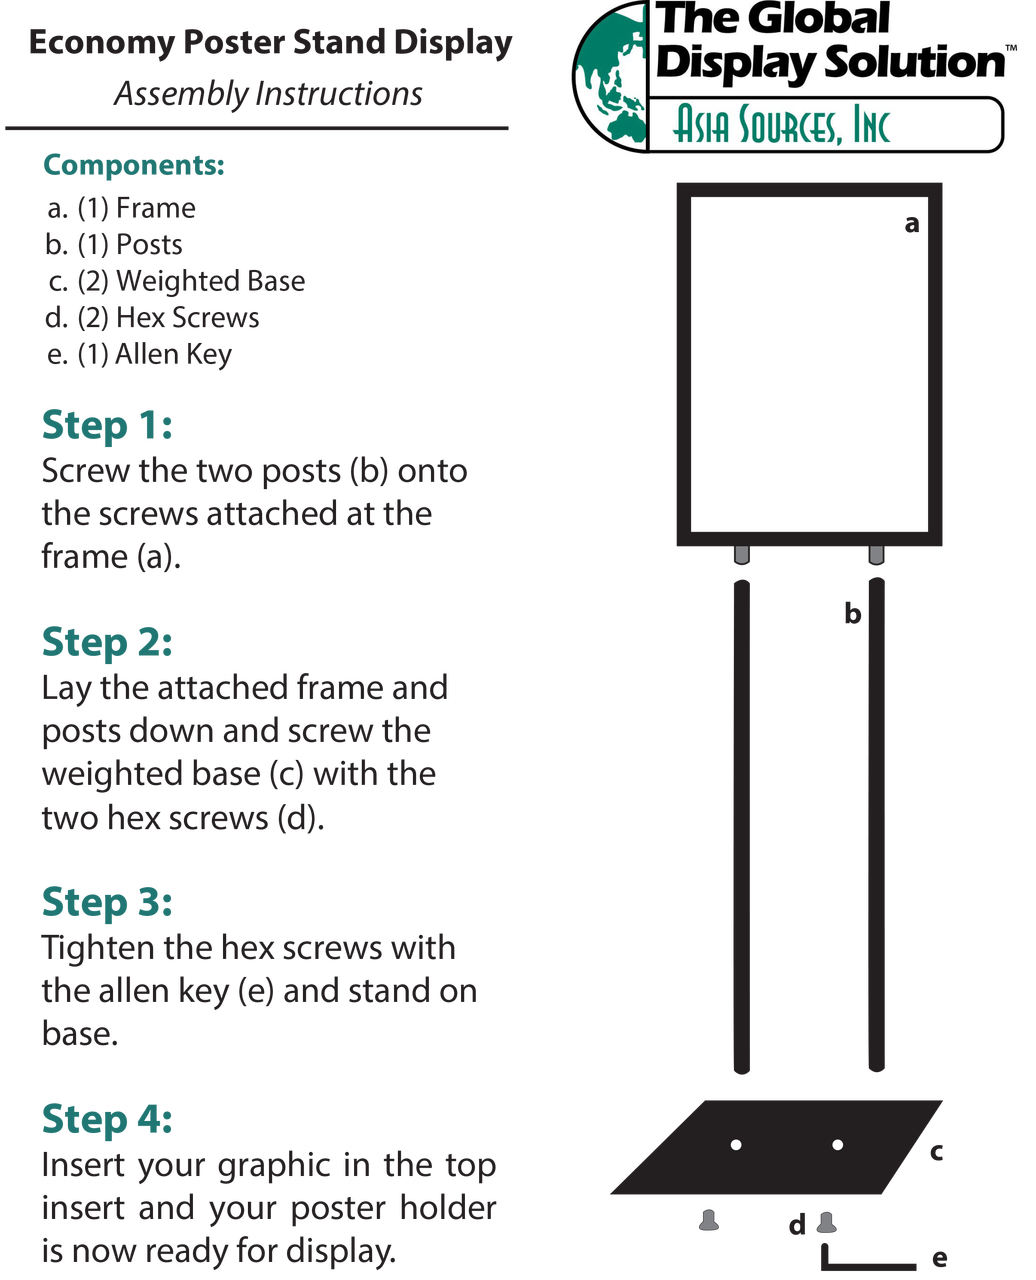 Instructions for poster stand